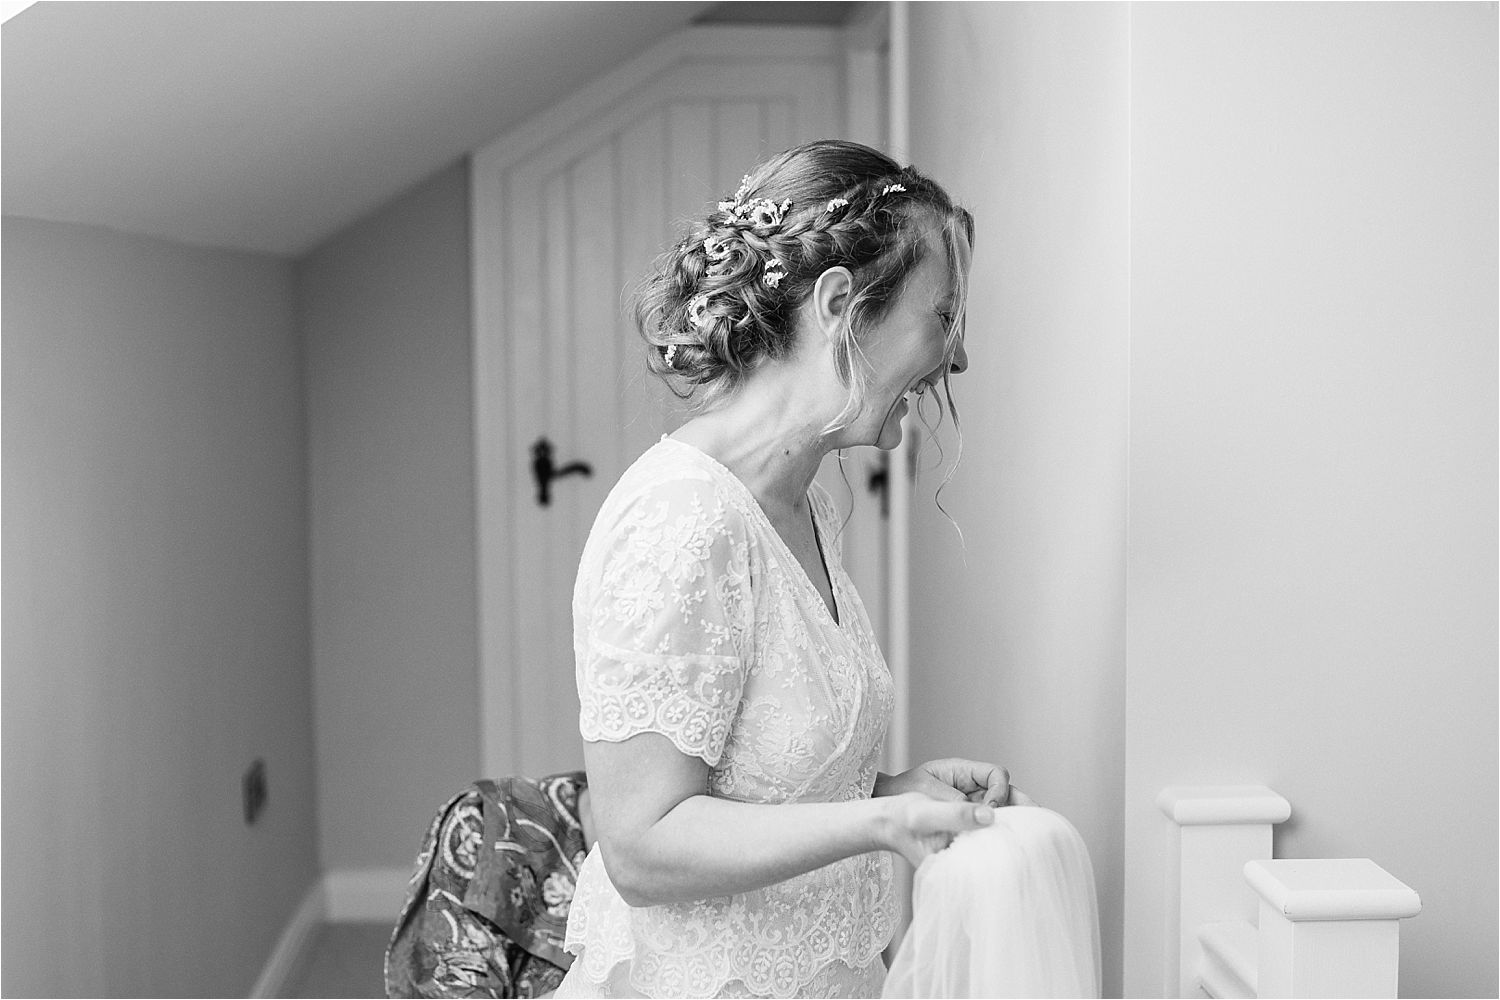 Bride laughing as she prepares her veil for fixing. Wedding dress by Elizabeth Avey Vintage Bridal Wear